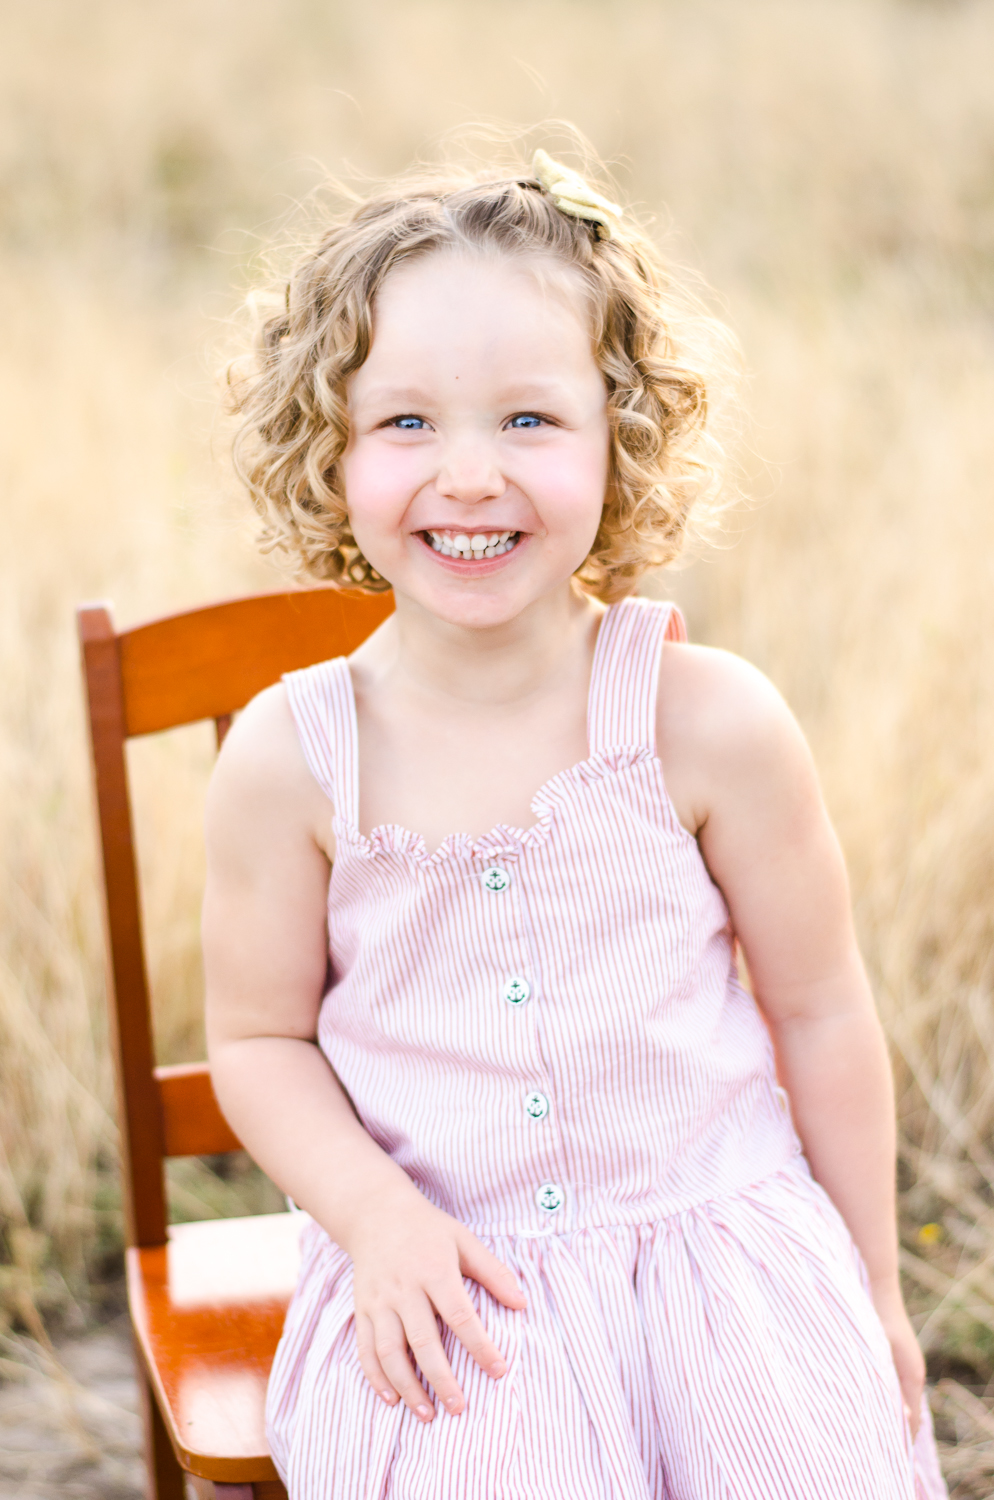 glendale arizona family photographer -04952015.jpg